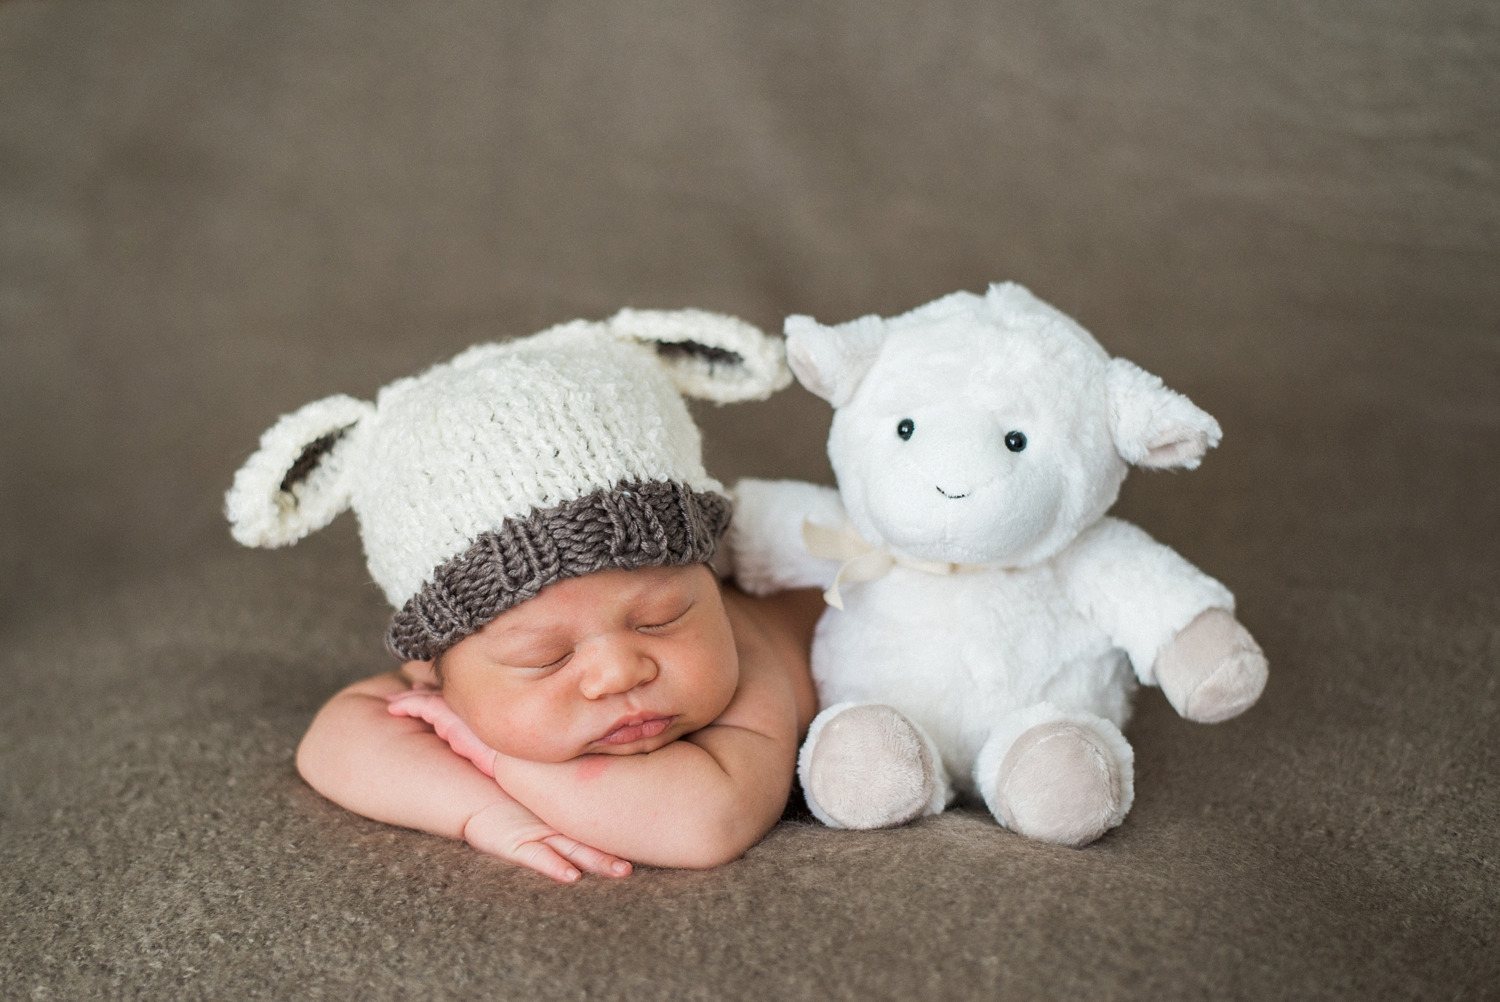 portland-newborn-photography-lamb-knit-hat-baby-boy-shelley-marie-photo-412_cr.jpg